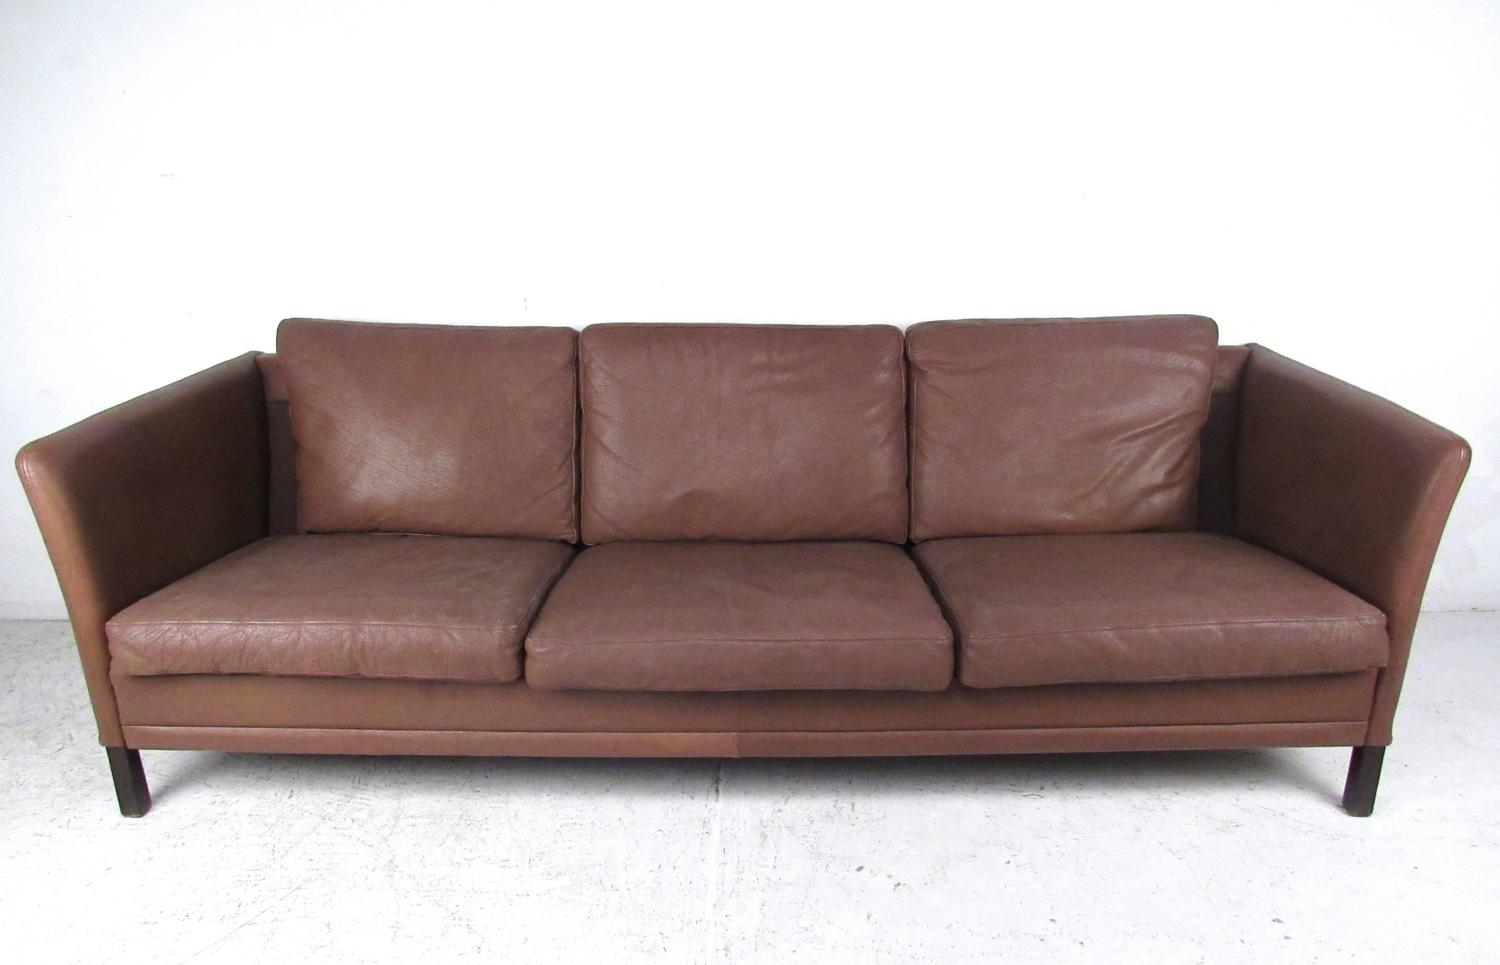 Impressive Danish Modern Leather Sofa For Sale at 1stdibs